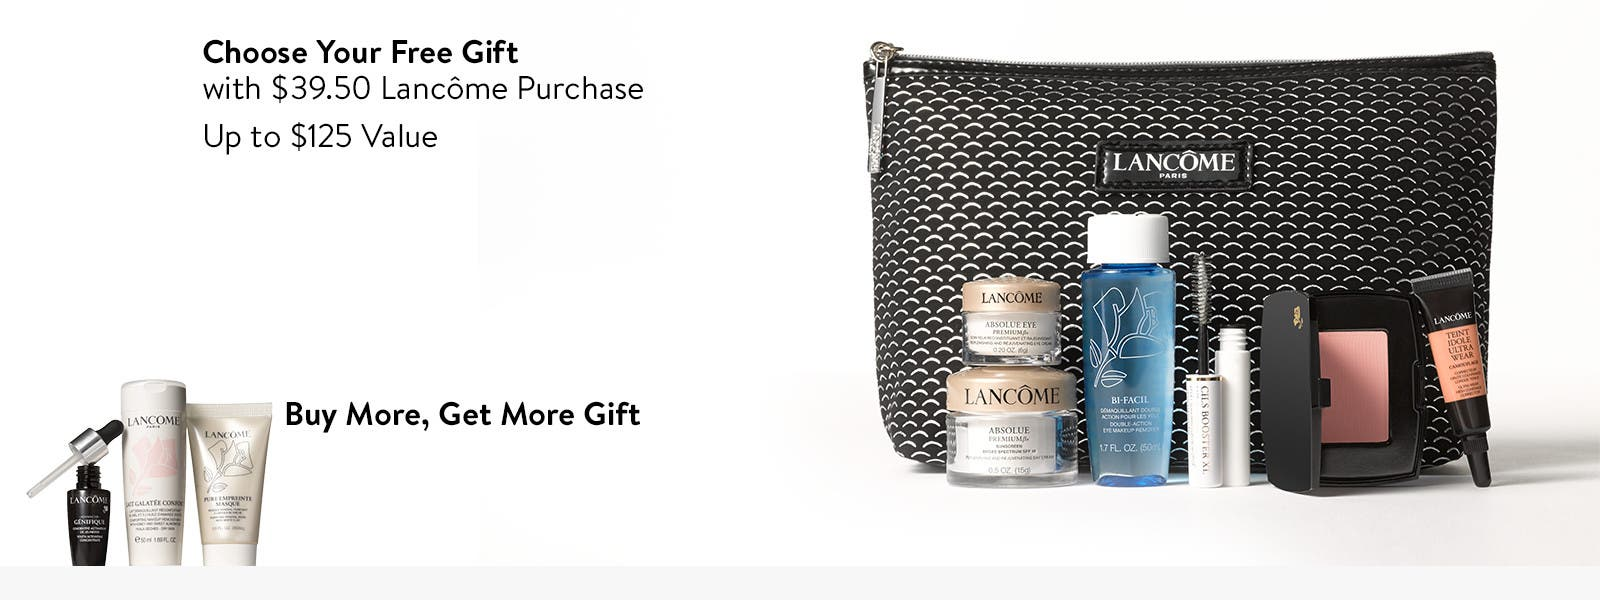 Choose your free gift with $39.50 Lancôme purchase. Up to $125 Value. Buy more, get more gift.